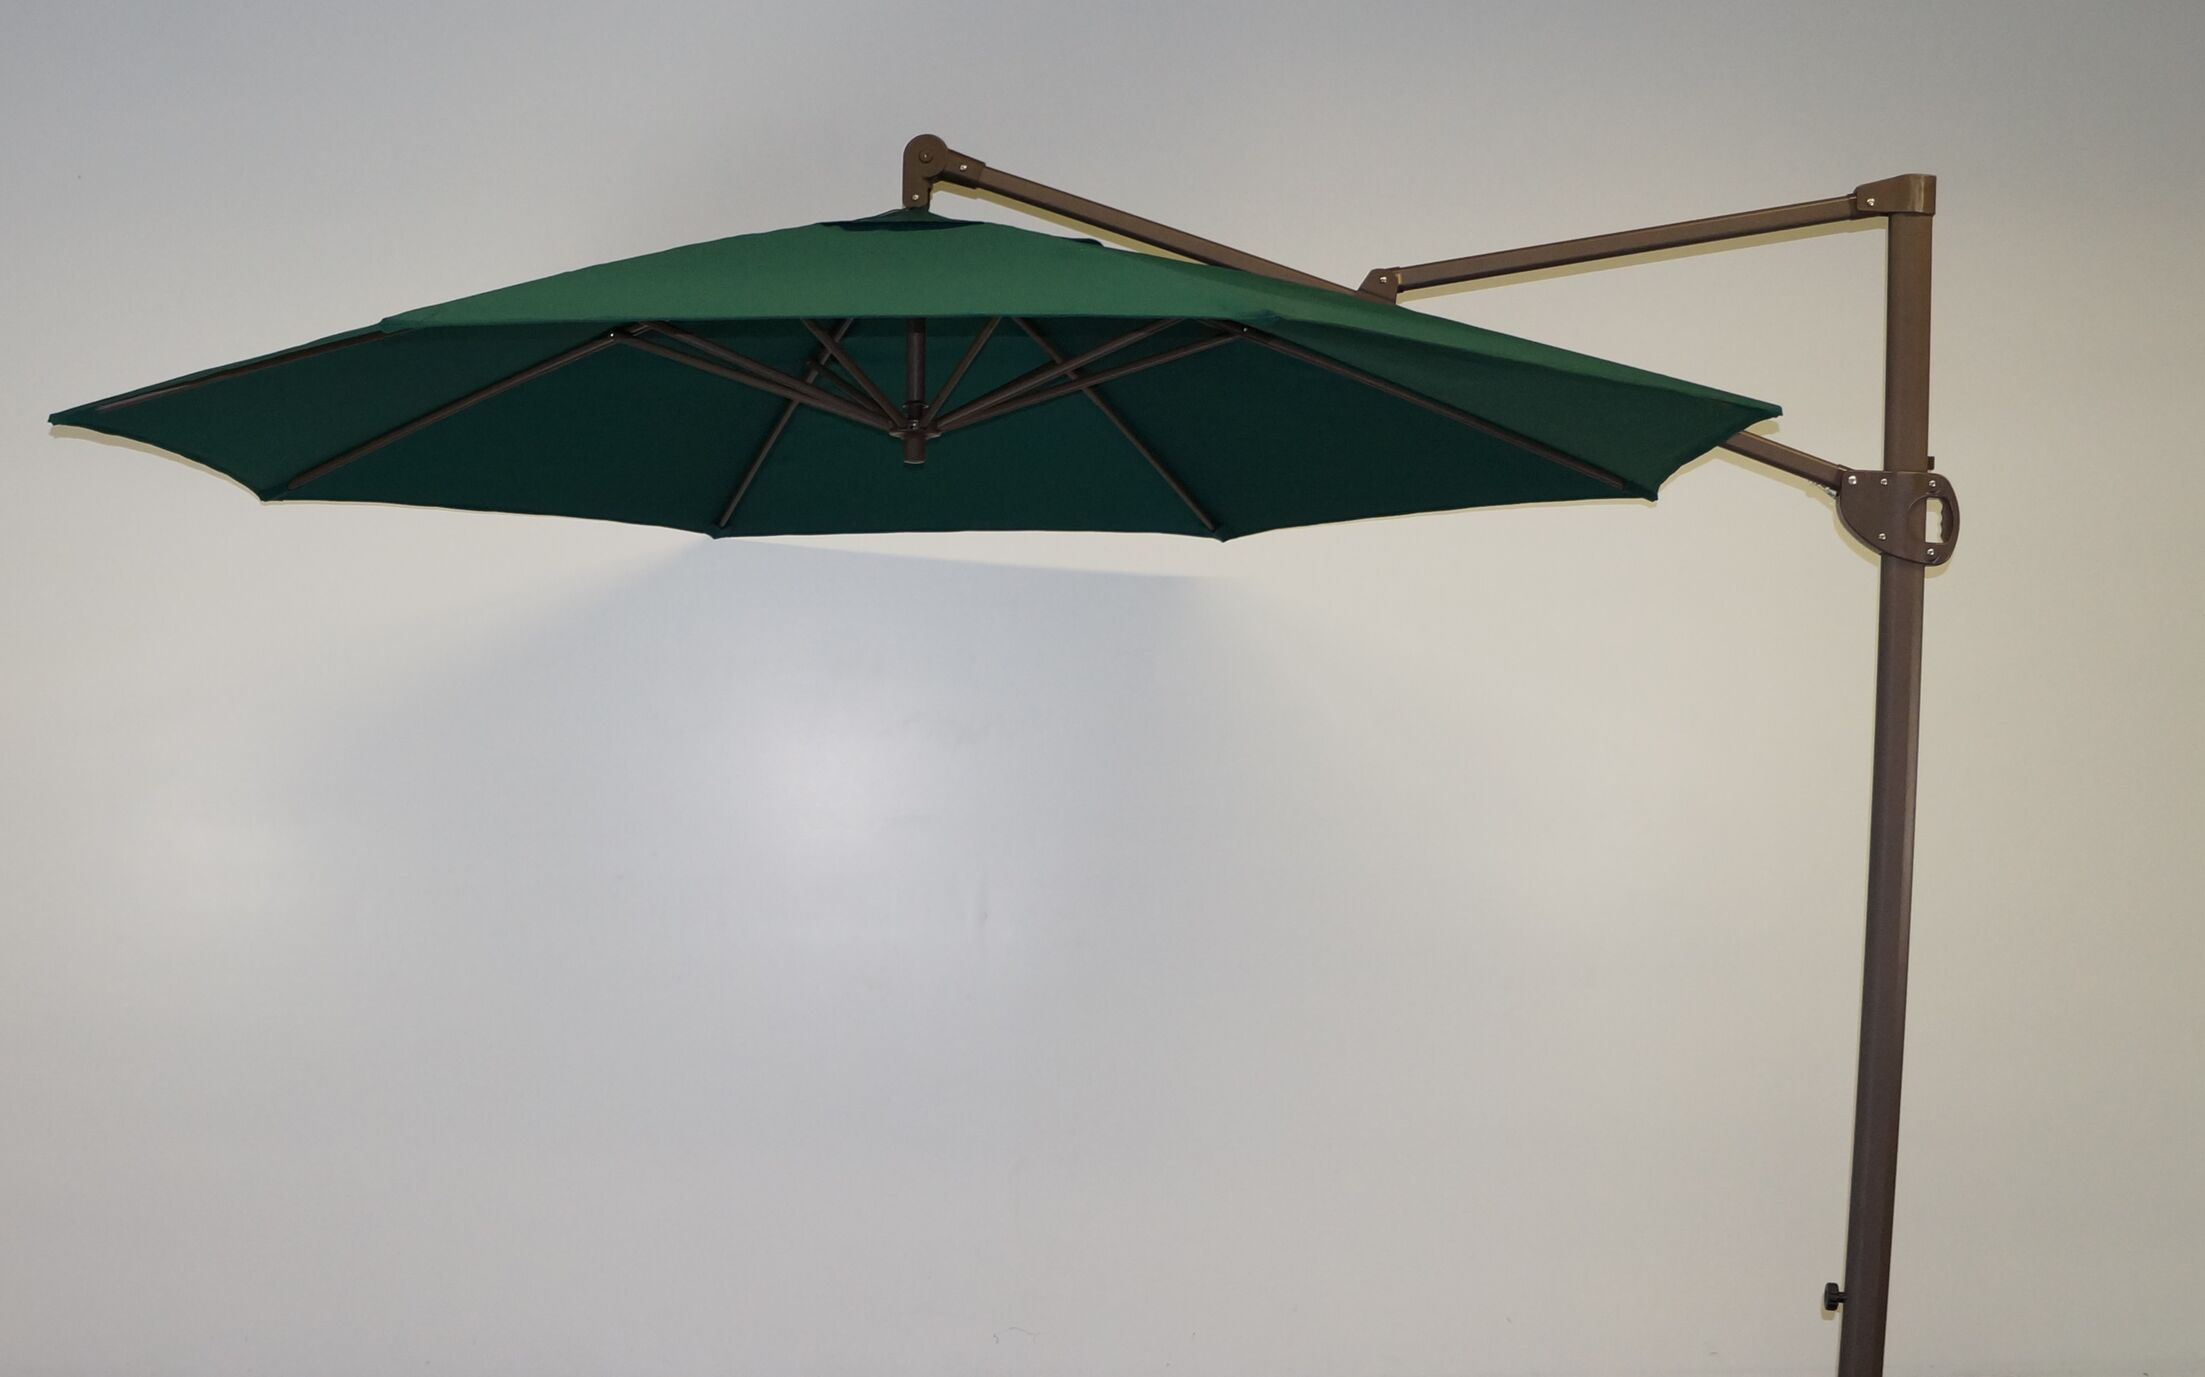 11' Cantilever Umbrella Fabric: Forest Green